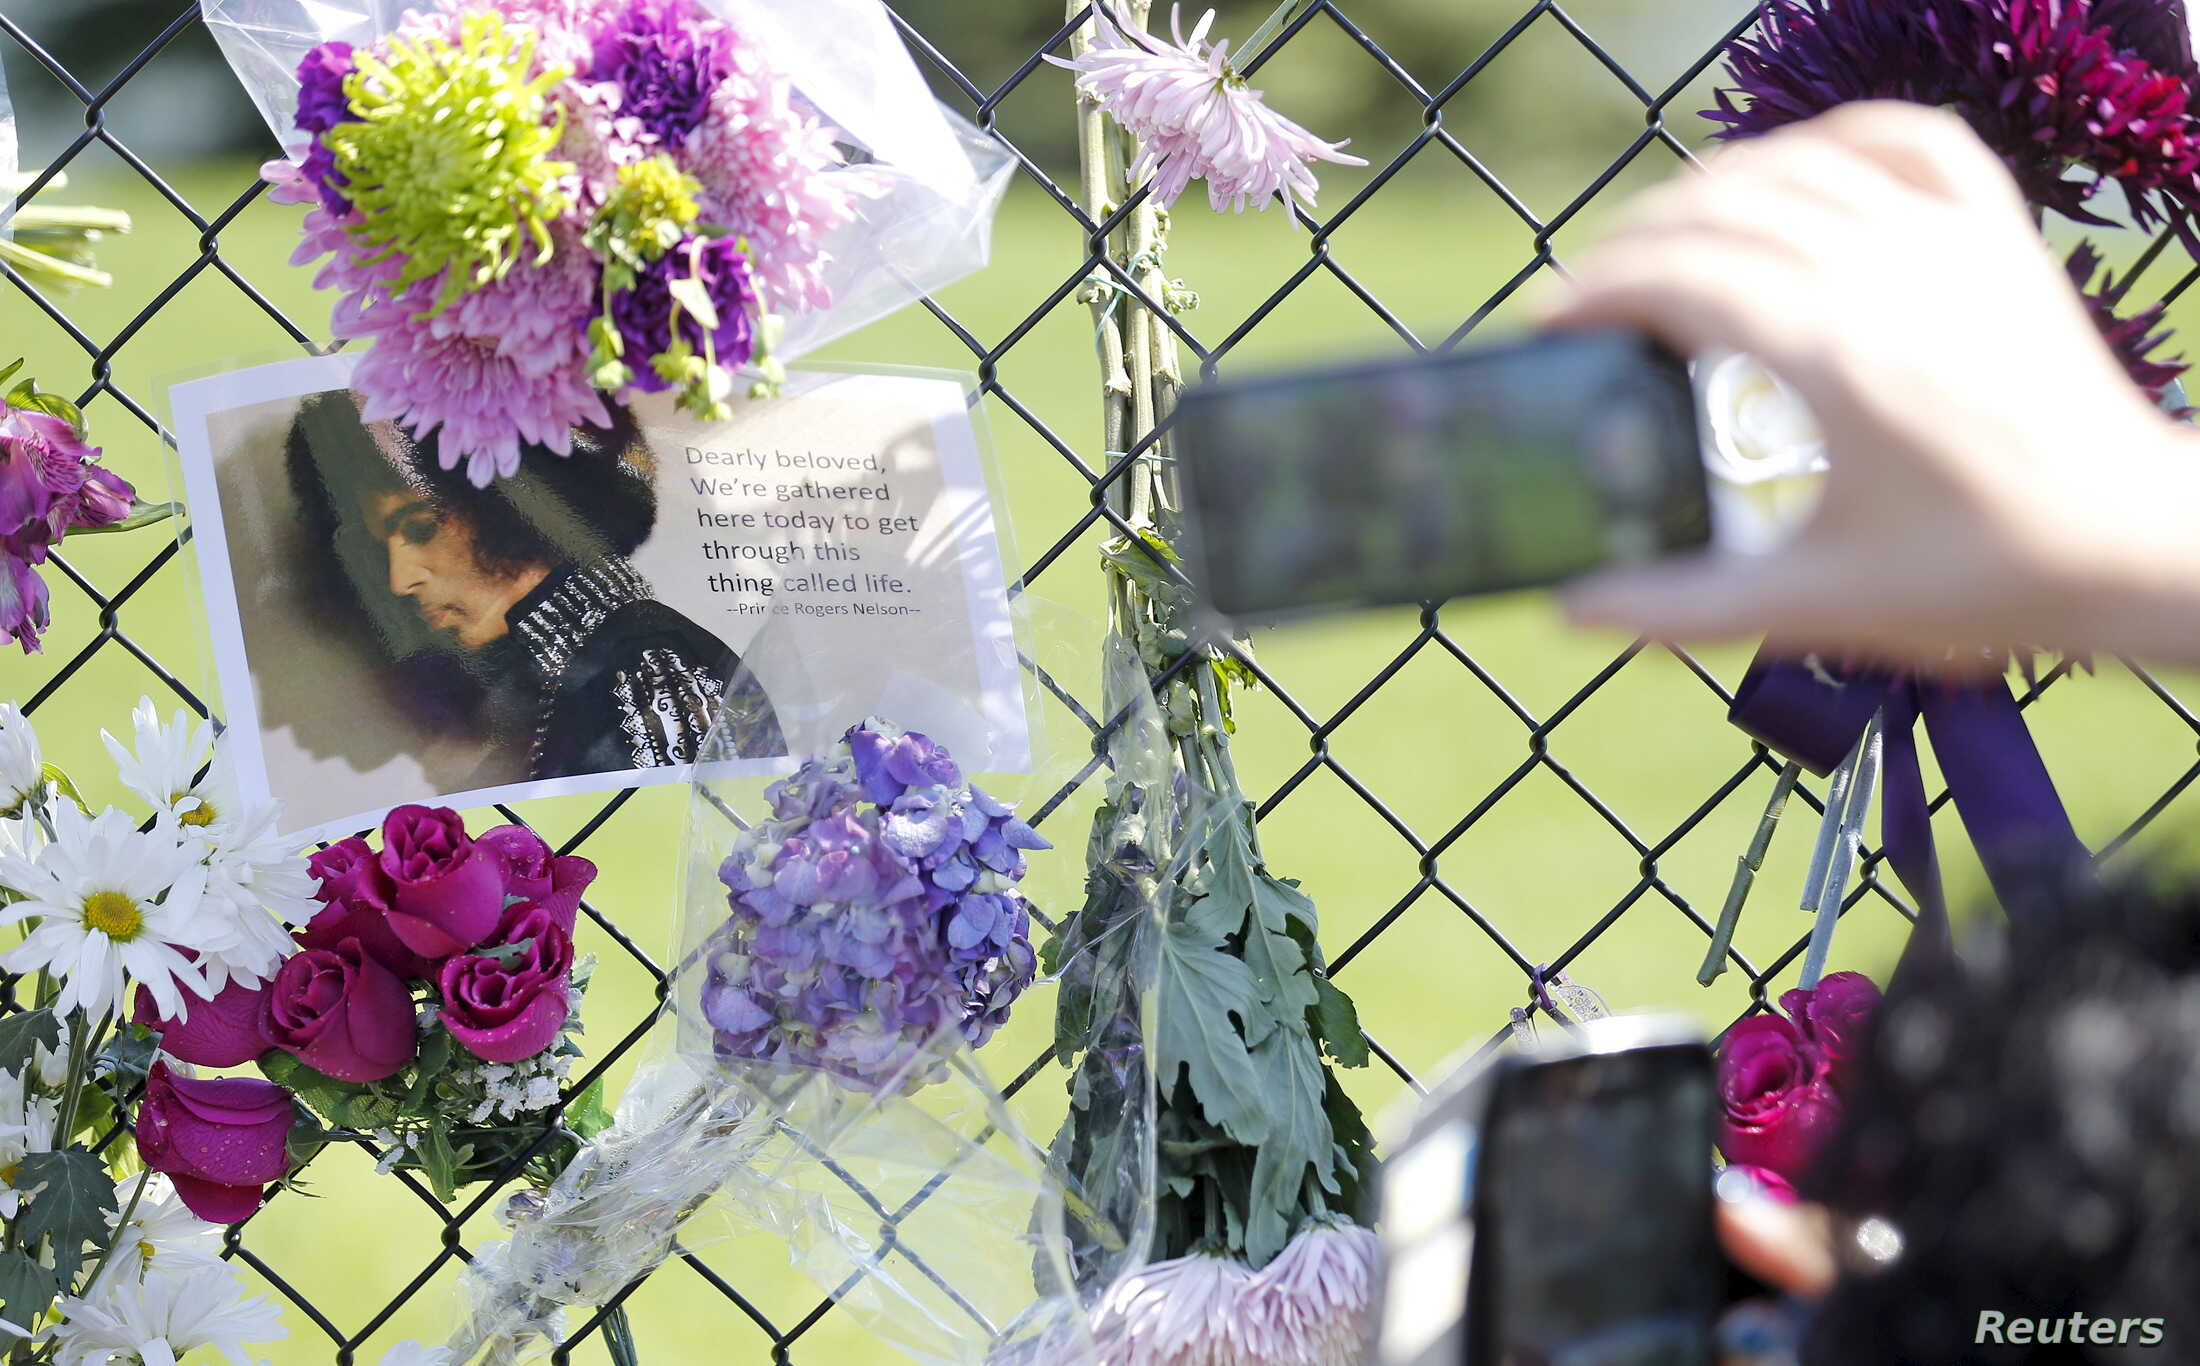 Fans take pictures of a makeshift memorial to musician Prince outside the fence of Paisley Park, his home and recording studio in Chanhassen, Minnesota, a day after his death on Apr 22, 2016. (Reuters)